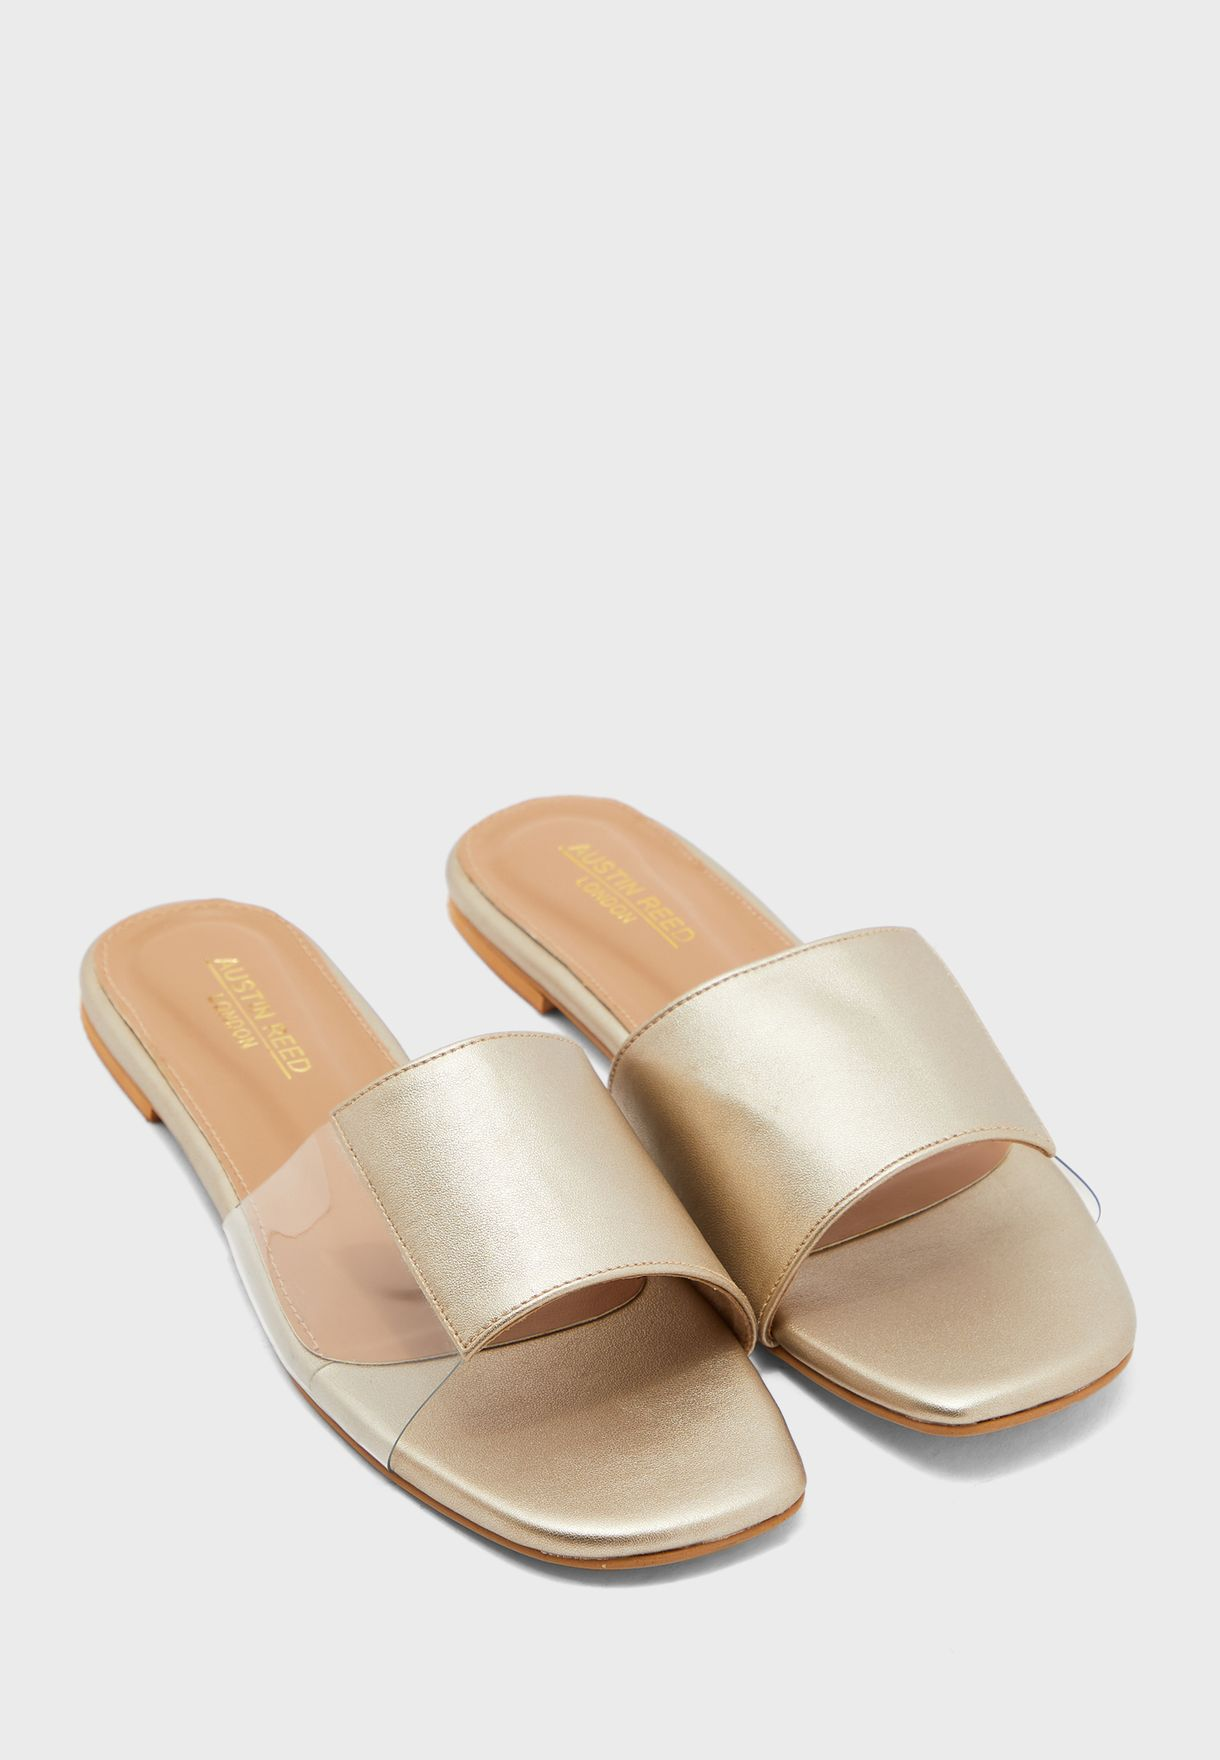 Buy Austin Reed Gold Wide Strap Flat Sandal For Women In Kuwait City Other Cities Aulfs34dff